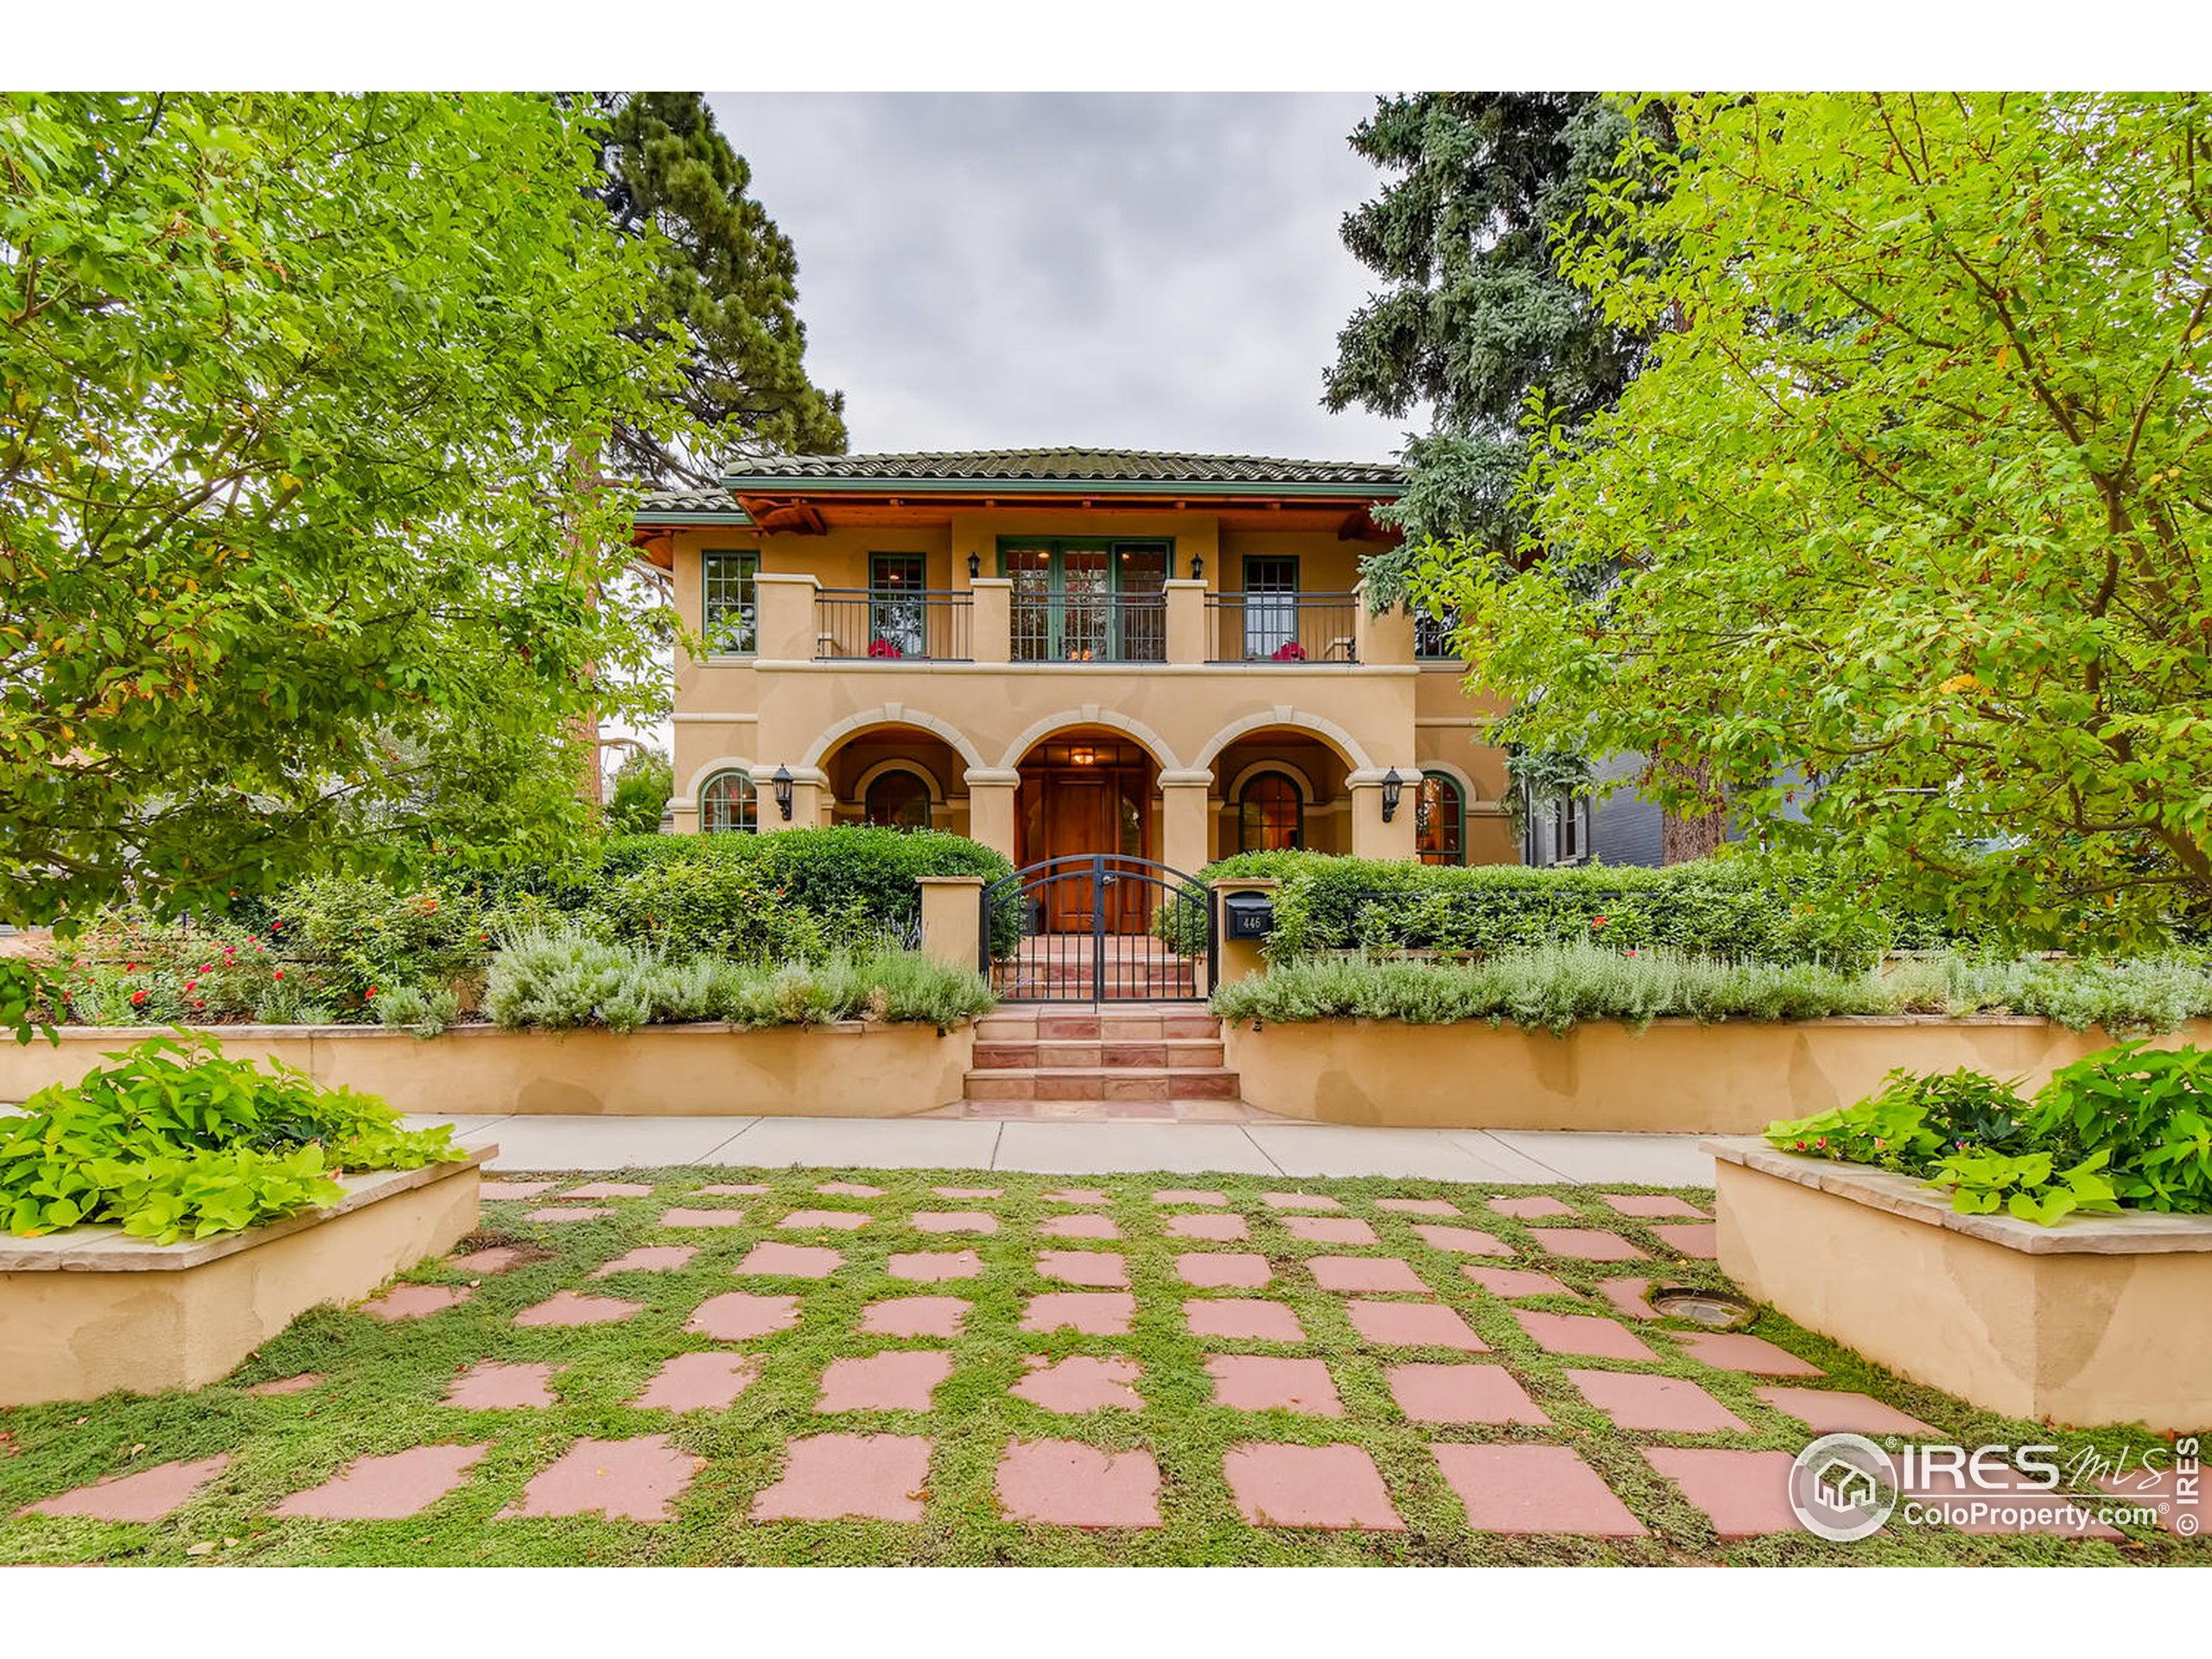 Walk beneath a striking colonnade into this stunning home on one of the best blocks of Cherry Creek North. Be greeted by the warmth of Italianate plaster walls, romantic arched doorways and windows, and solid knotty Alder doors throughout. Built with the finest materials and craftsmanship, this welcoming house features spacious rooms including a formal dining room which seats 12 comfortably, a chef's dream kitchen with Wolf appliances and wet bar, 2 offices, 2 laundries, and a private courtyard with fire pit and fountain. Enjoy a whole house automated audiovisual system operating off your tablet or smart phone and a west-facing balcony for sunset viewing. Thresholdless construction; elevator to all levels; his + hers walk in closets, wine room; in-law area; oversized 3 car garage w/ potting bench and a dog run for the pooch.